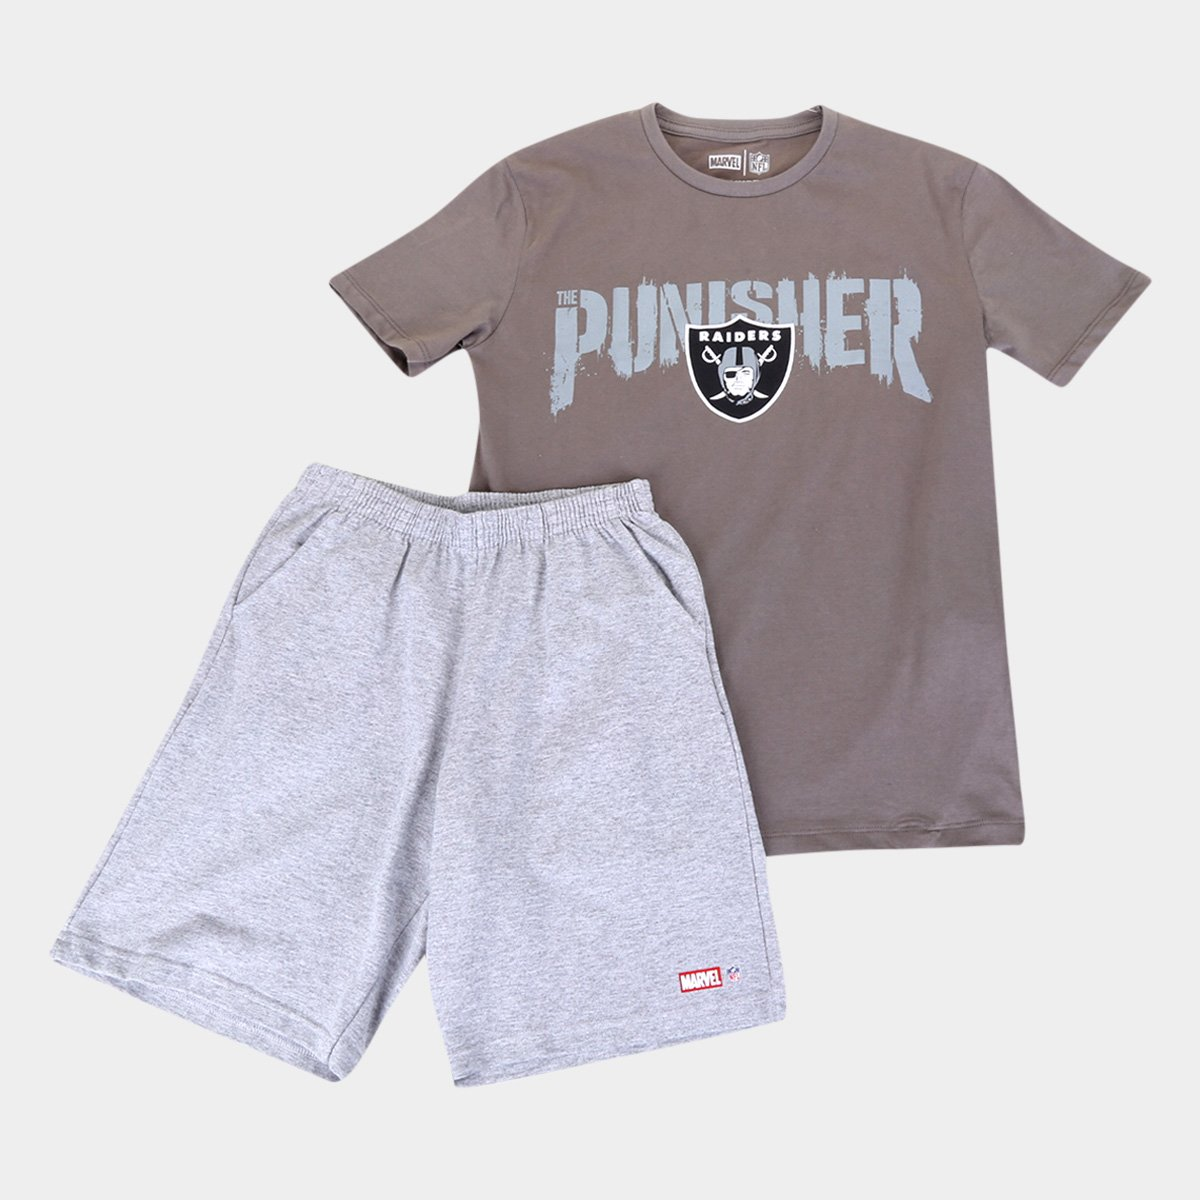 Conjunto Juvenil NFL Disney Camiseta e Bermuda The Punisher Masculino